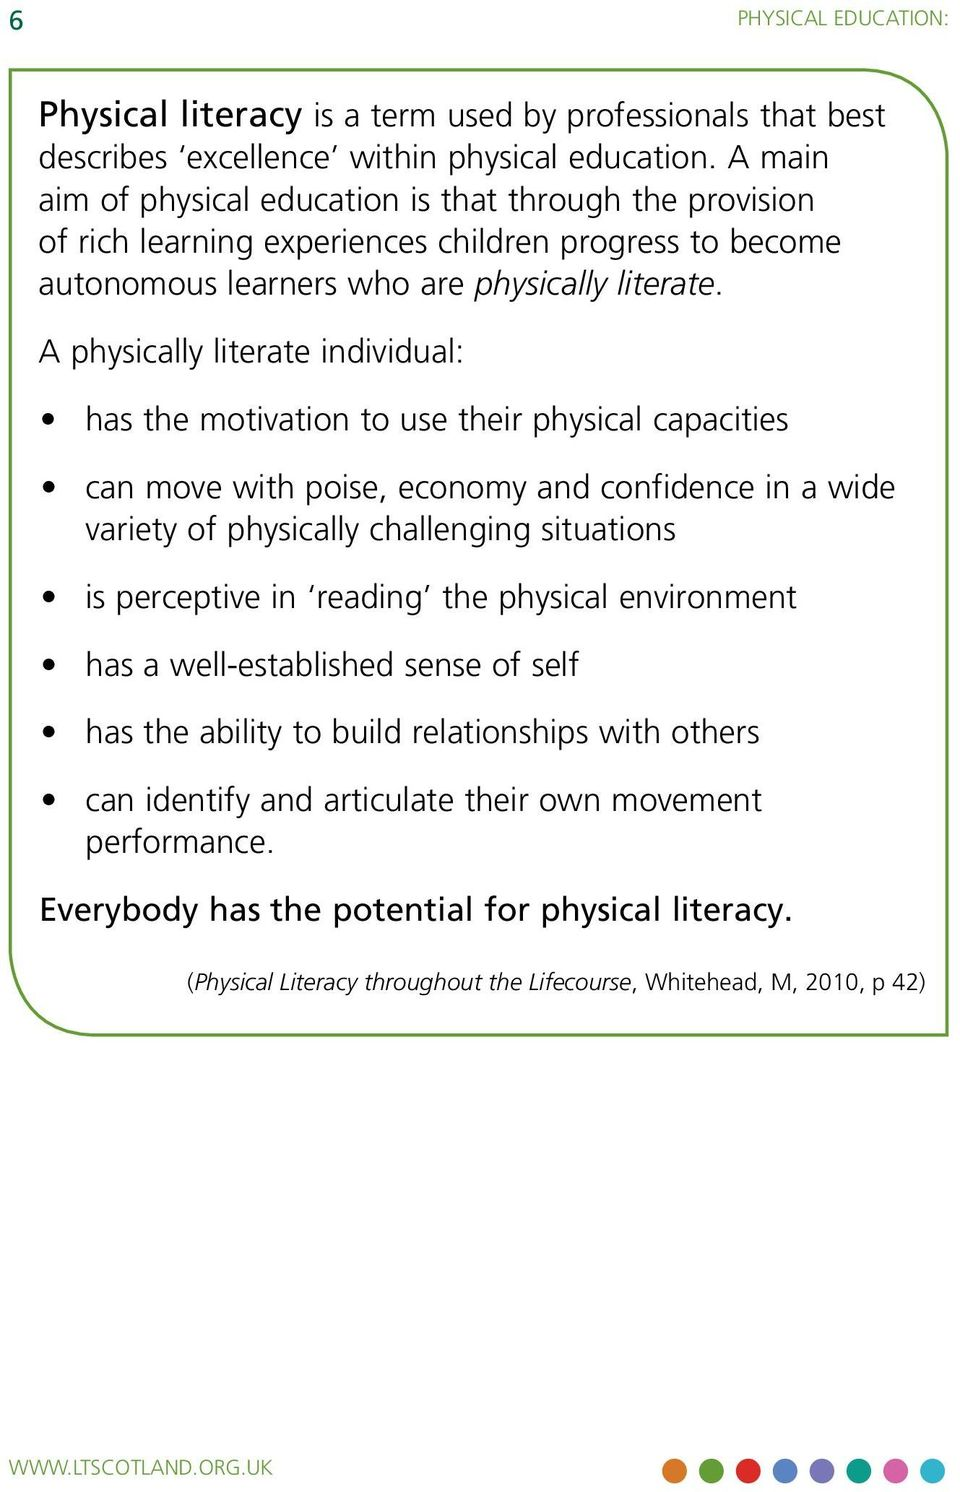 A physically literate individual: has the motivation to use their physical capacities can move with poise, economy and confidence in a wide variety of physically challenging situations is perceptive